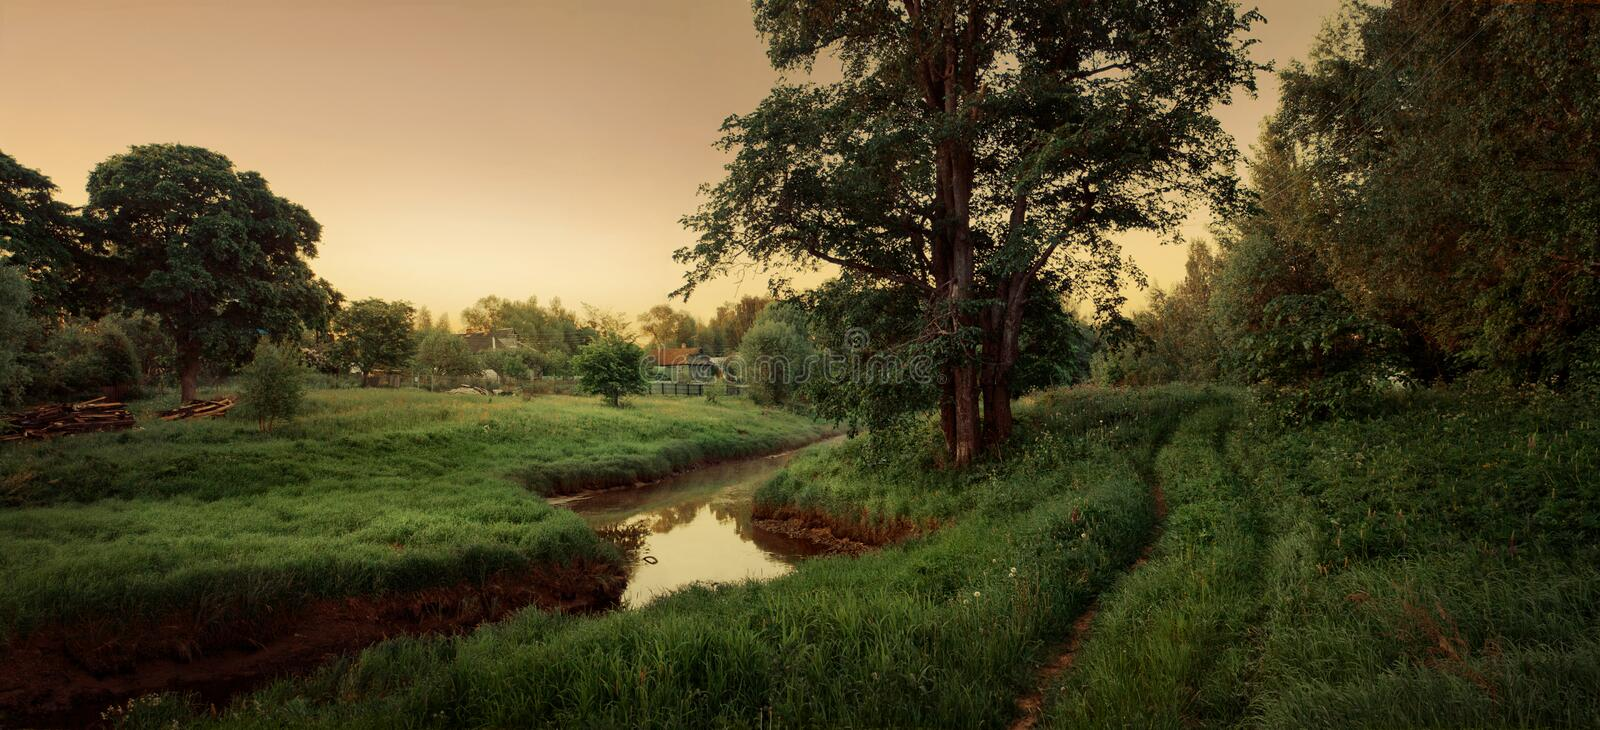 Fairytale village with river and road royalty free stock photos